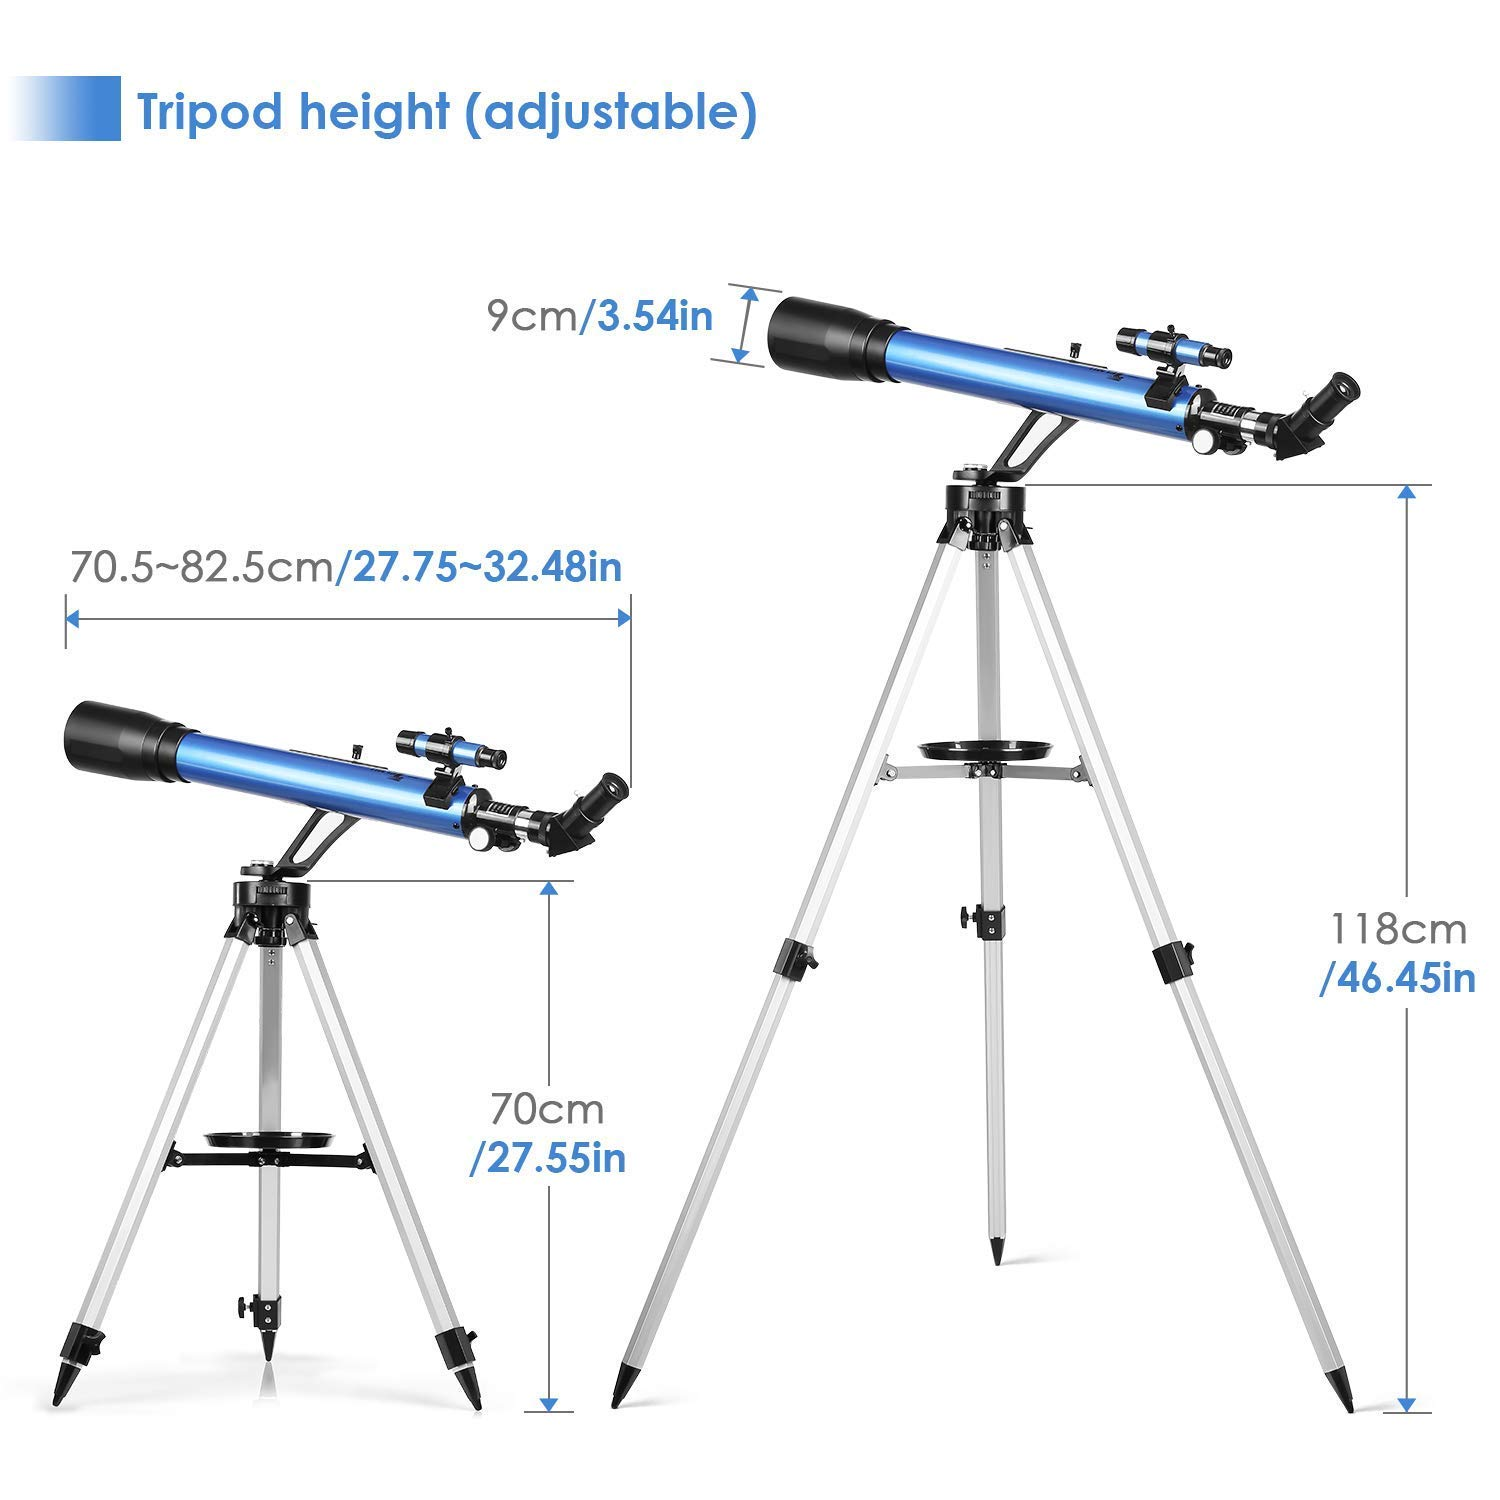 27.5In-46.5In Portable Travel Telescopes for Kids and Adults with Phone Adapter TELMU Astronomical Refractor Telescope 60mm Aperture /& 700mm Focal Length Adjustable